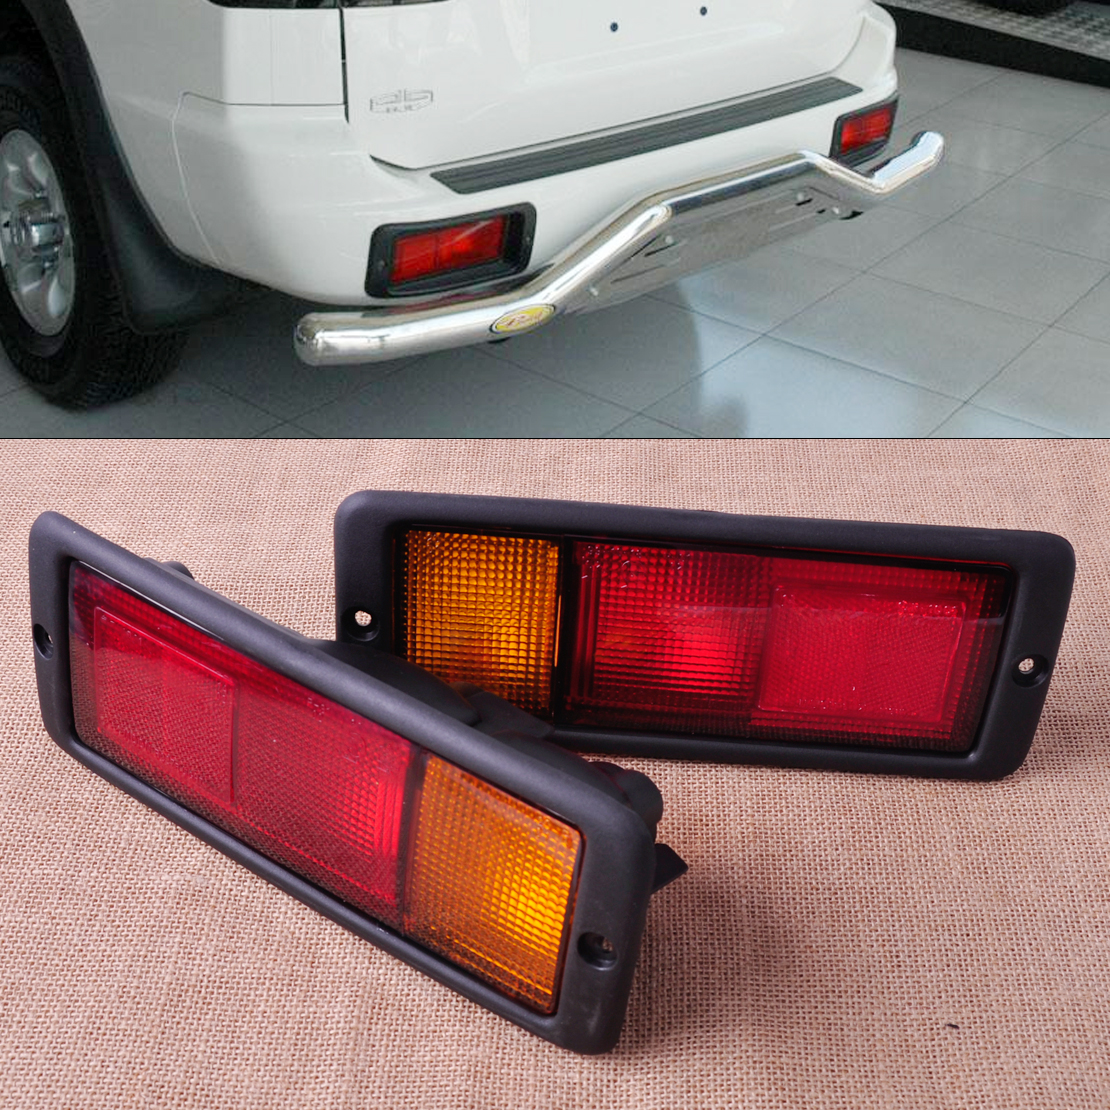 CITALL MB124963 MB124964 2pcs Rear Tail Light Lamp for Mitsubishi Pajero Montero 1992 1993 1994 1995 214-1946L-UE 214-1946R-UE newest car styling super bright led drl daytime running light fog lamp cover with turn signal for hyundai elantra 2016 2017